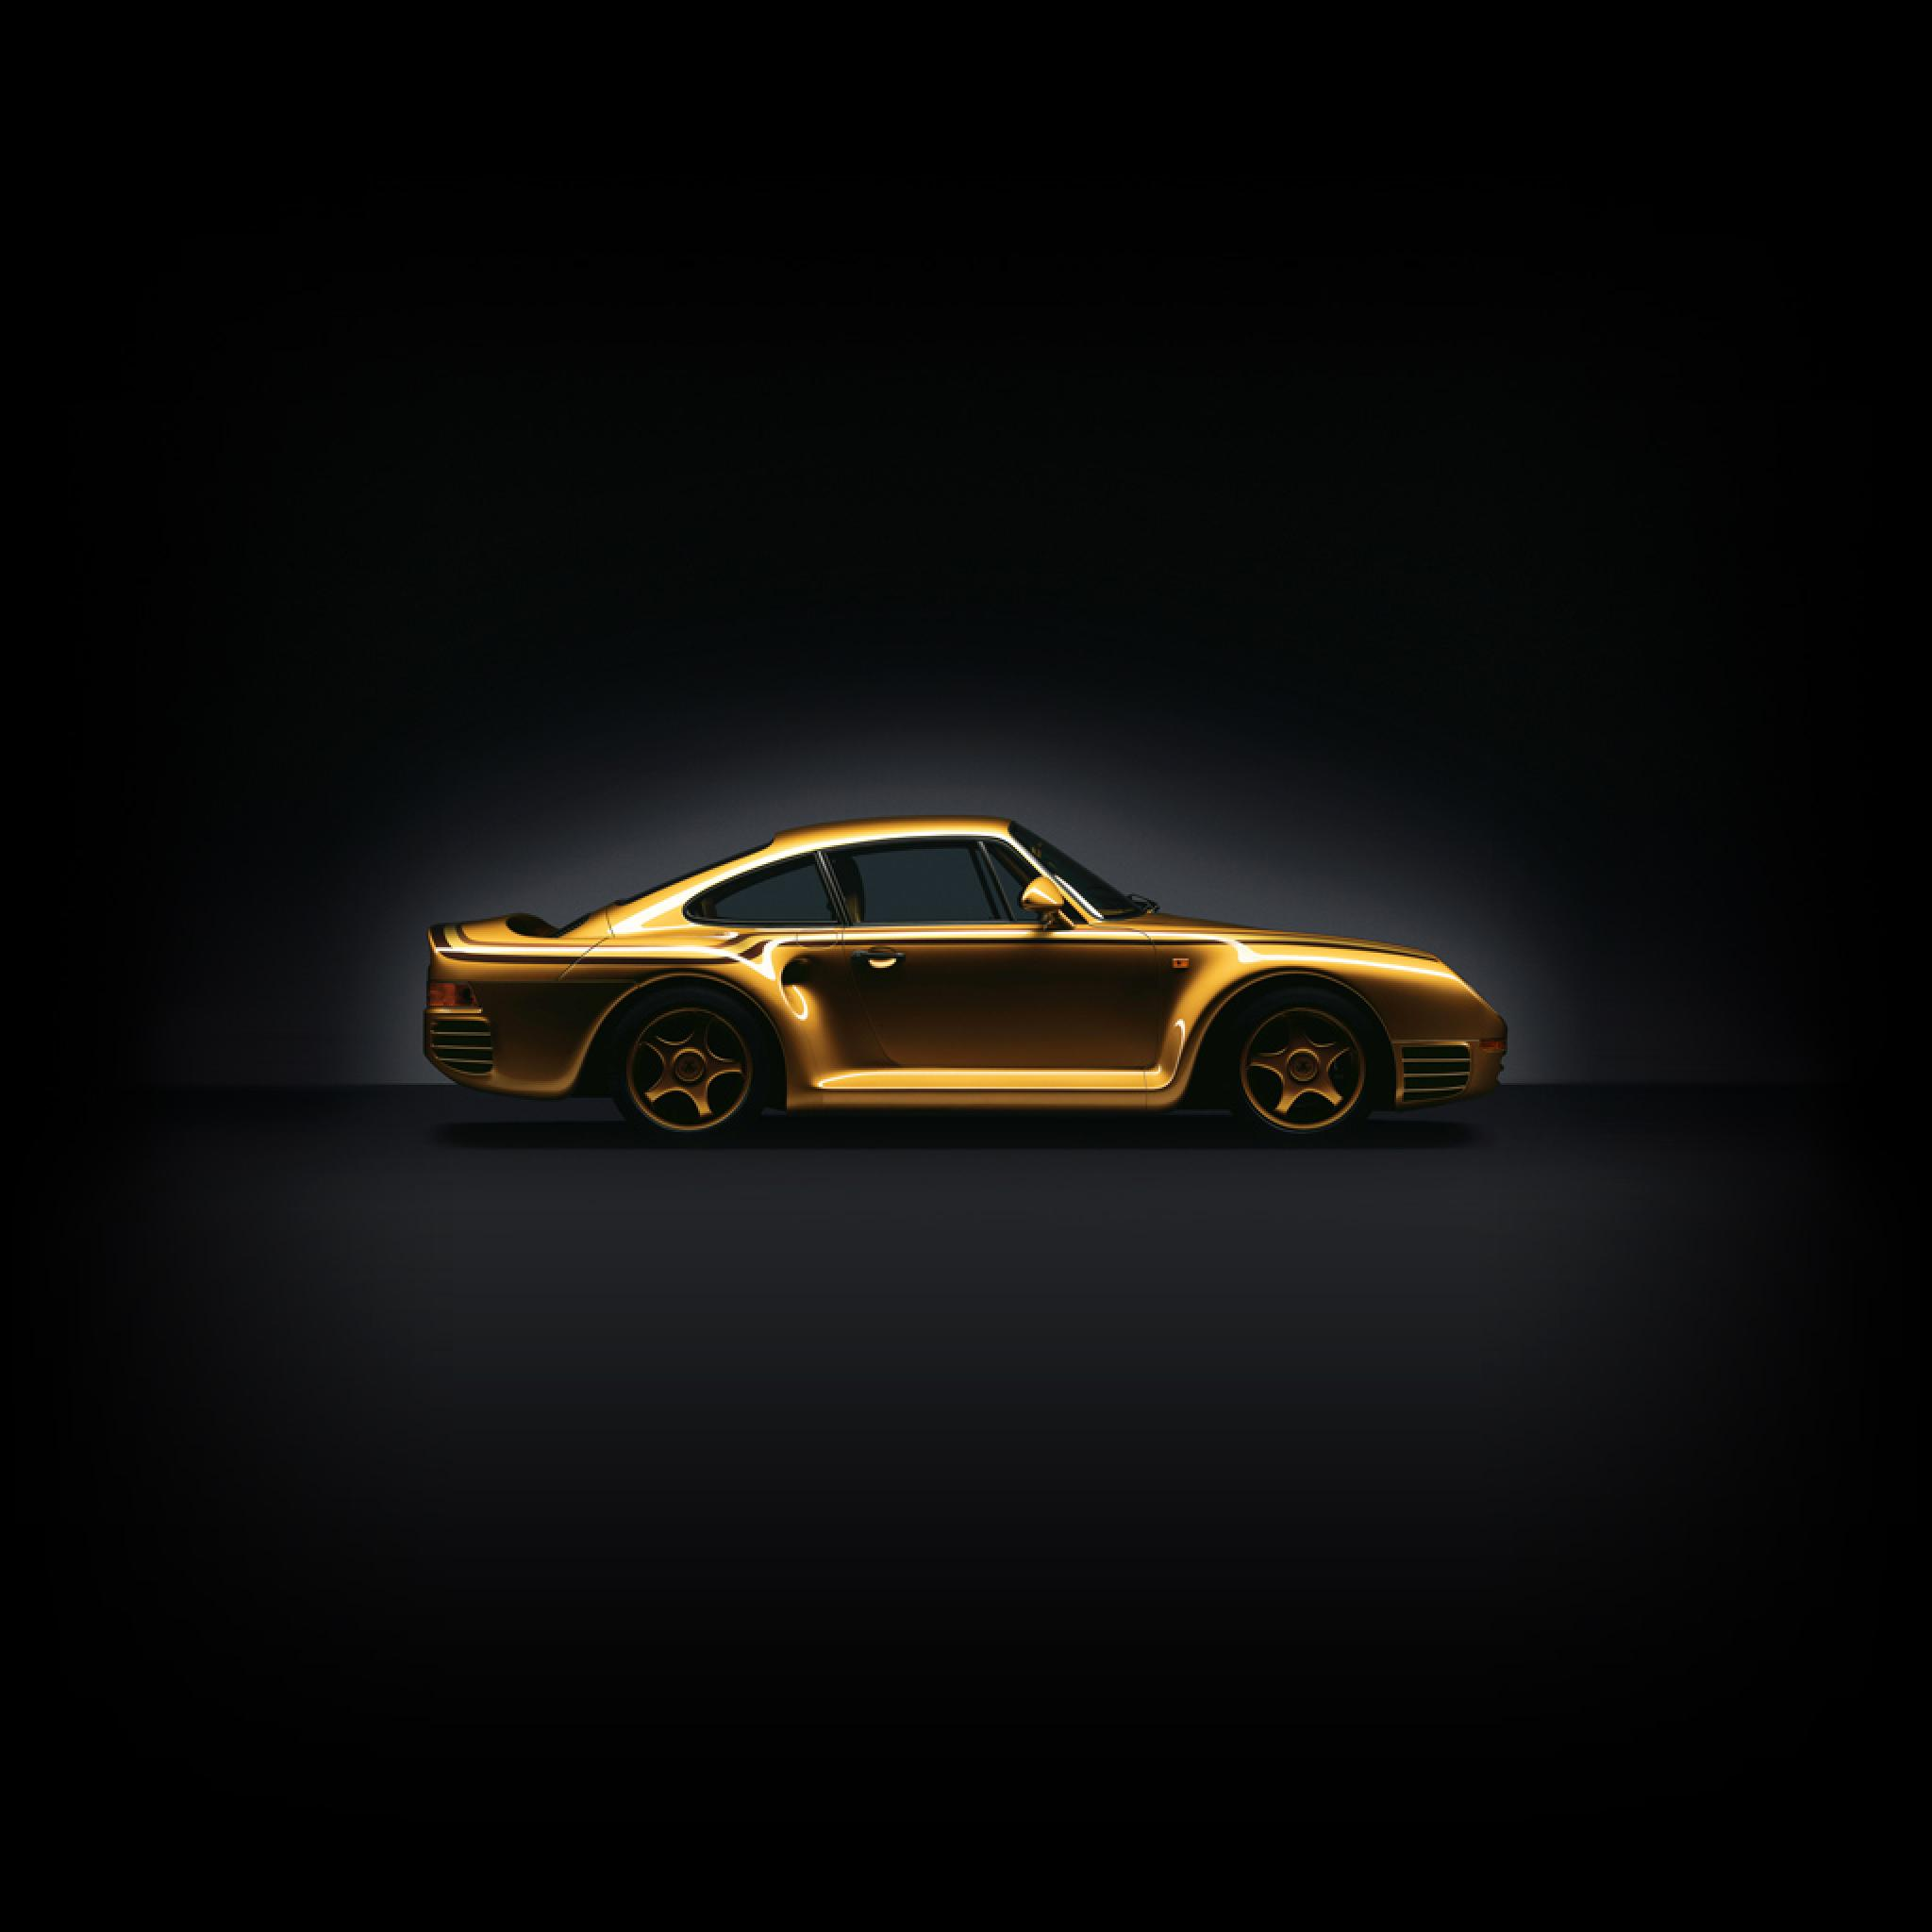 Rolls Royce Car Wallpaper Free Download Cars Porsche 959 Exclusive Gold Plated Ipad Iphone Hd